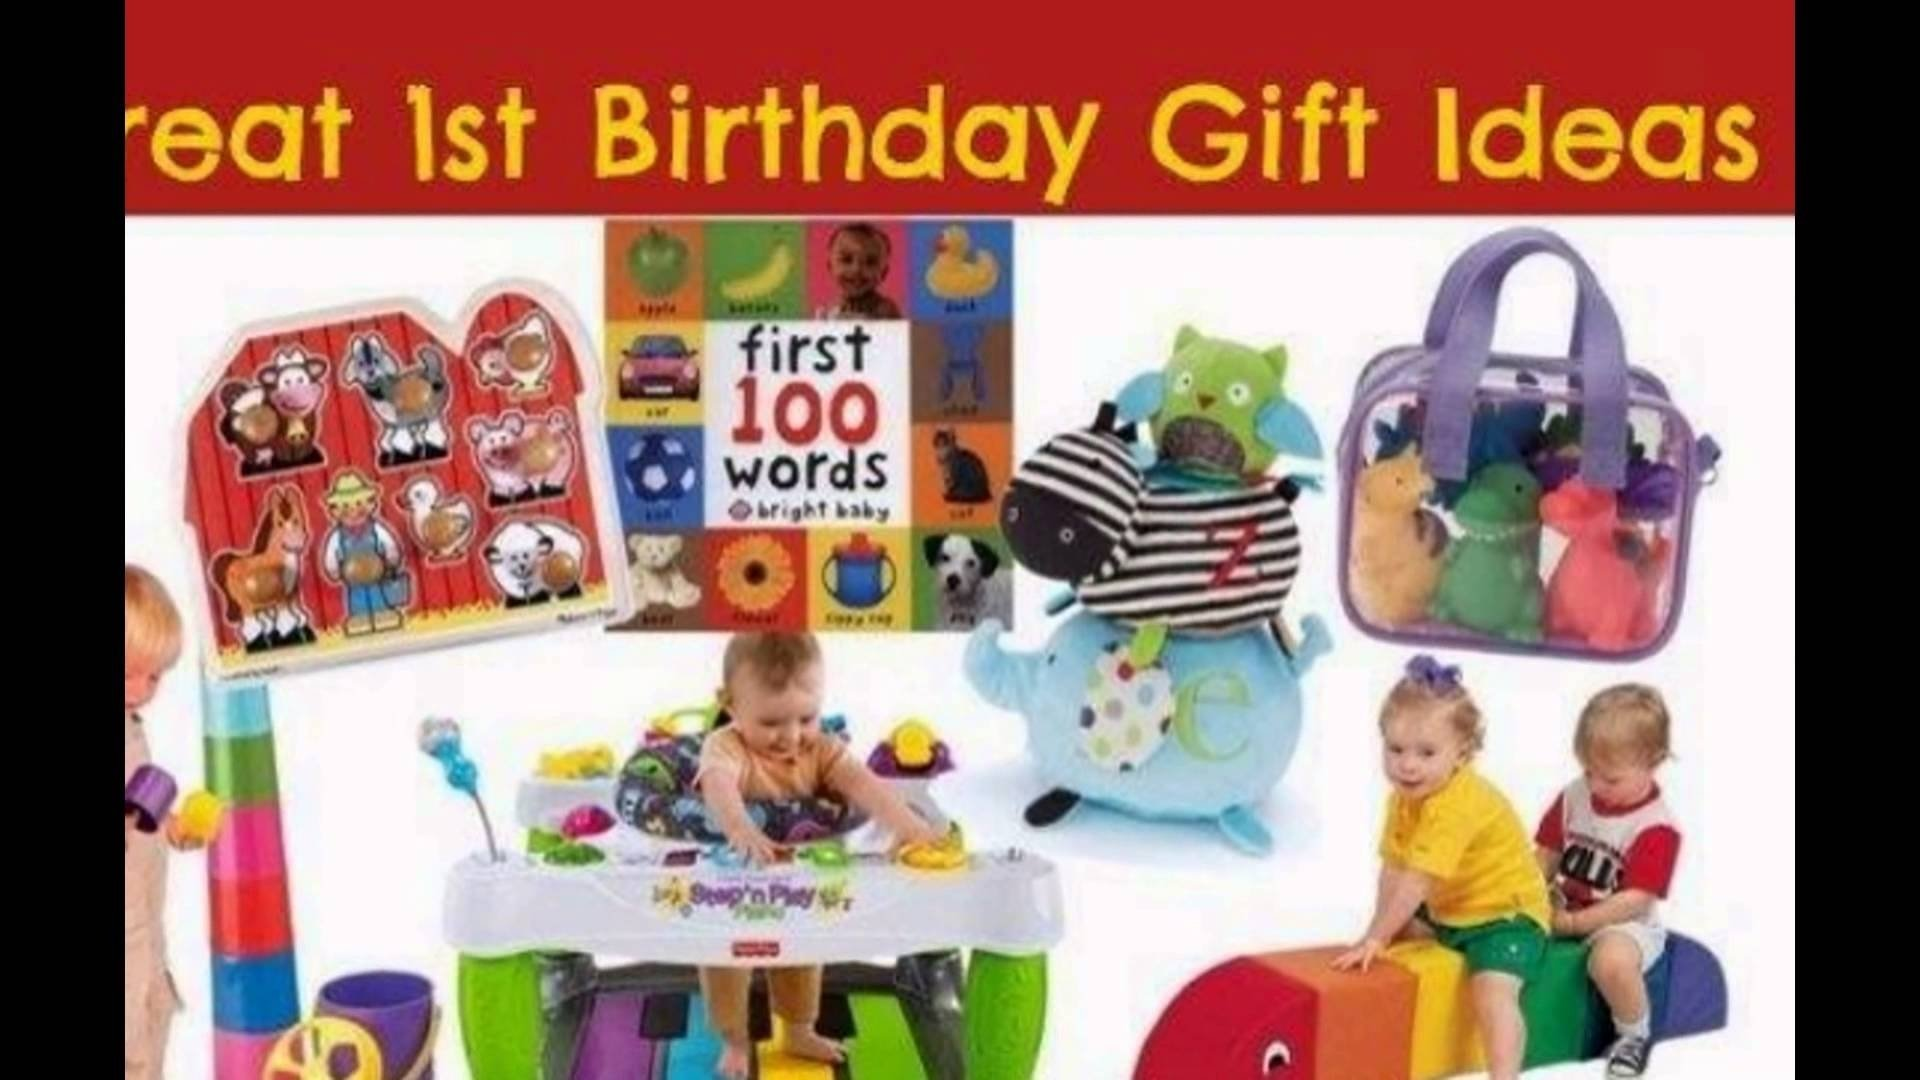 10 Best Birthday Gift Ideas For 1 Year Old Gifts Youtube